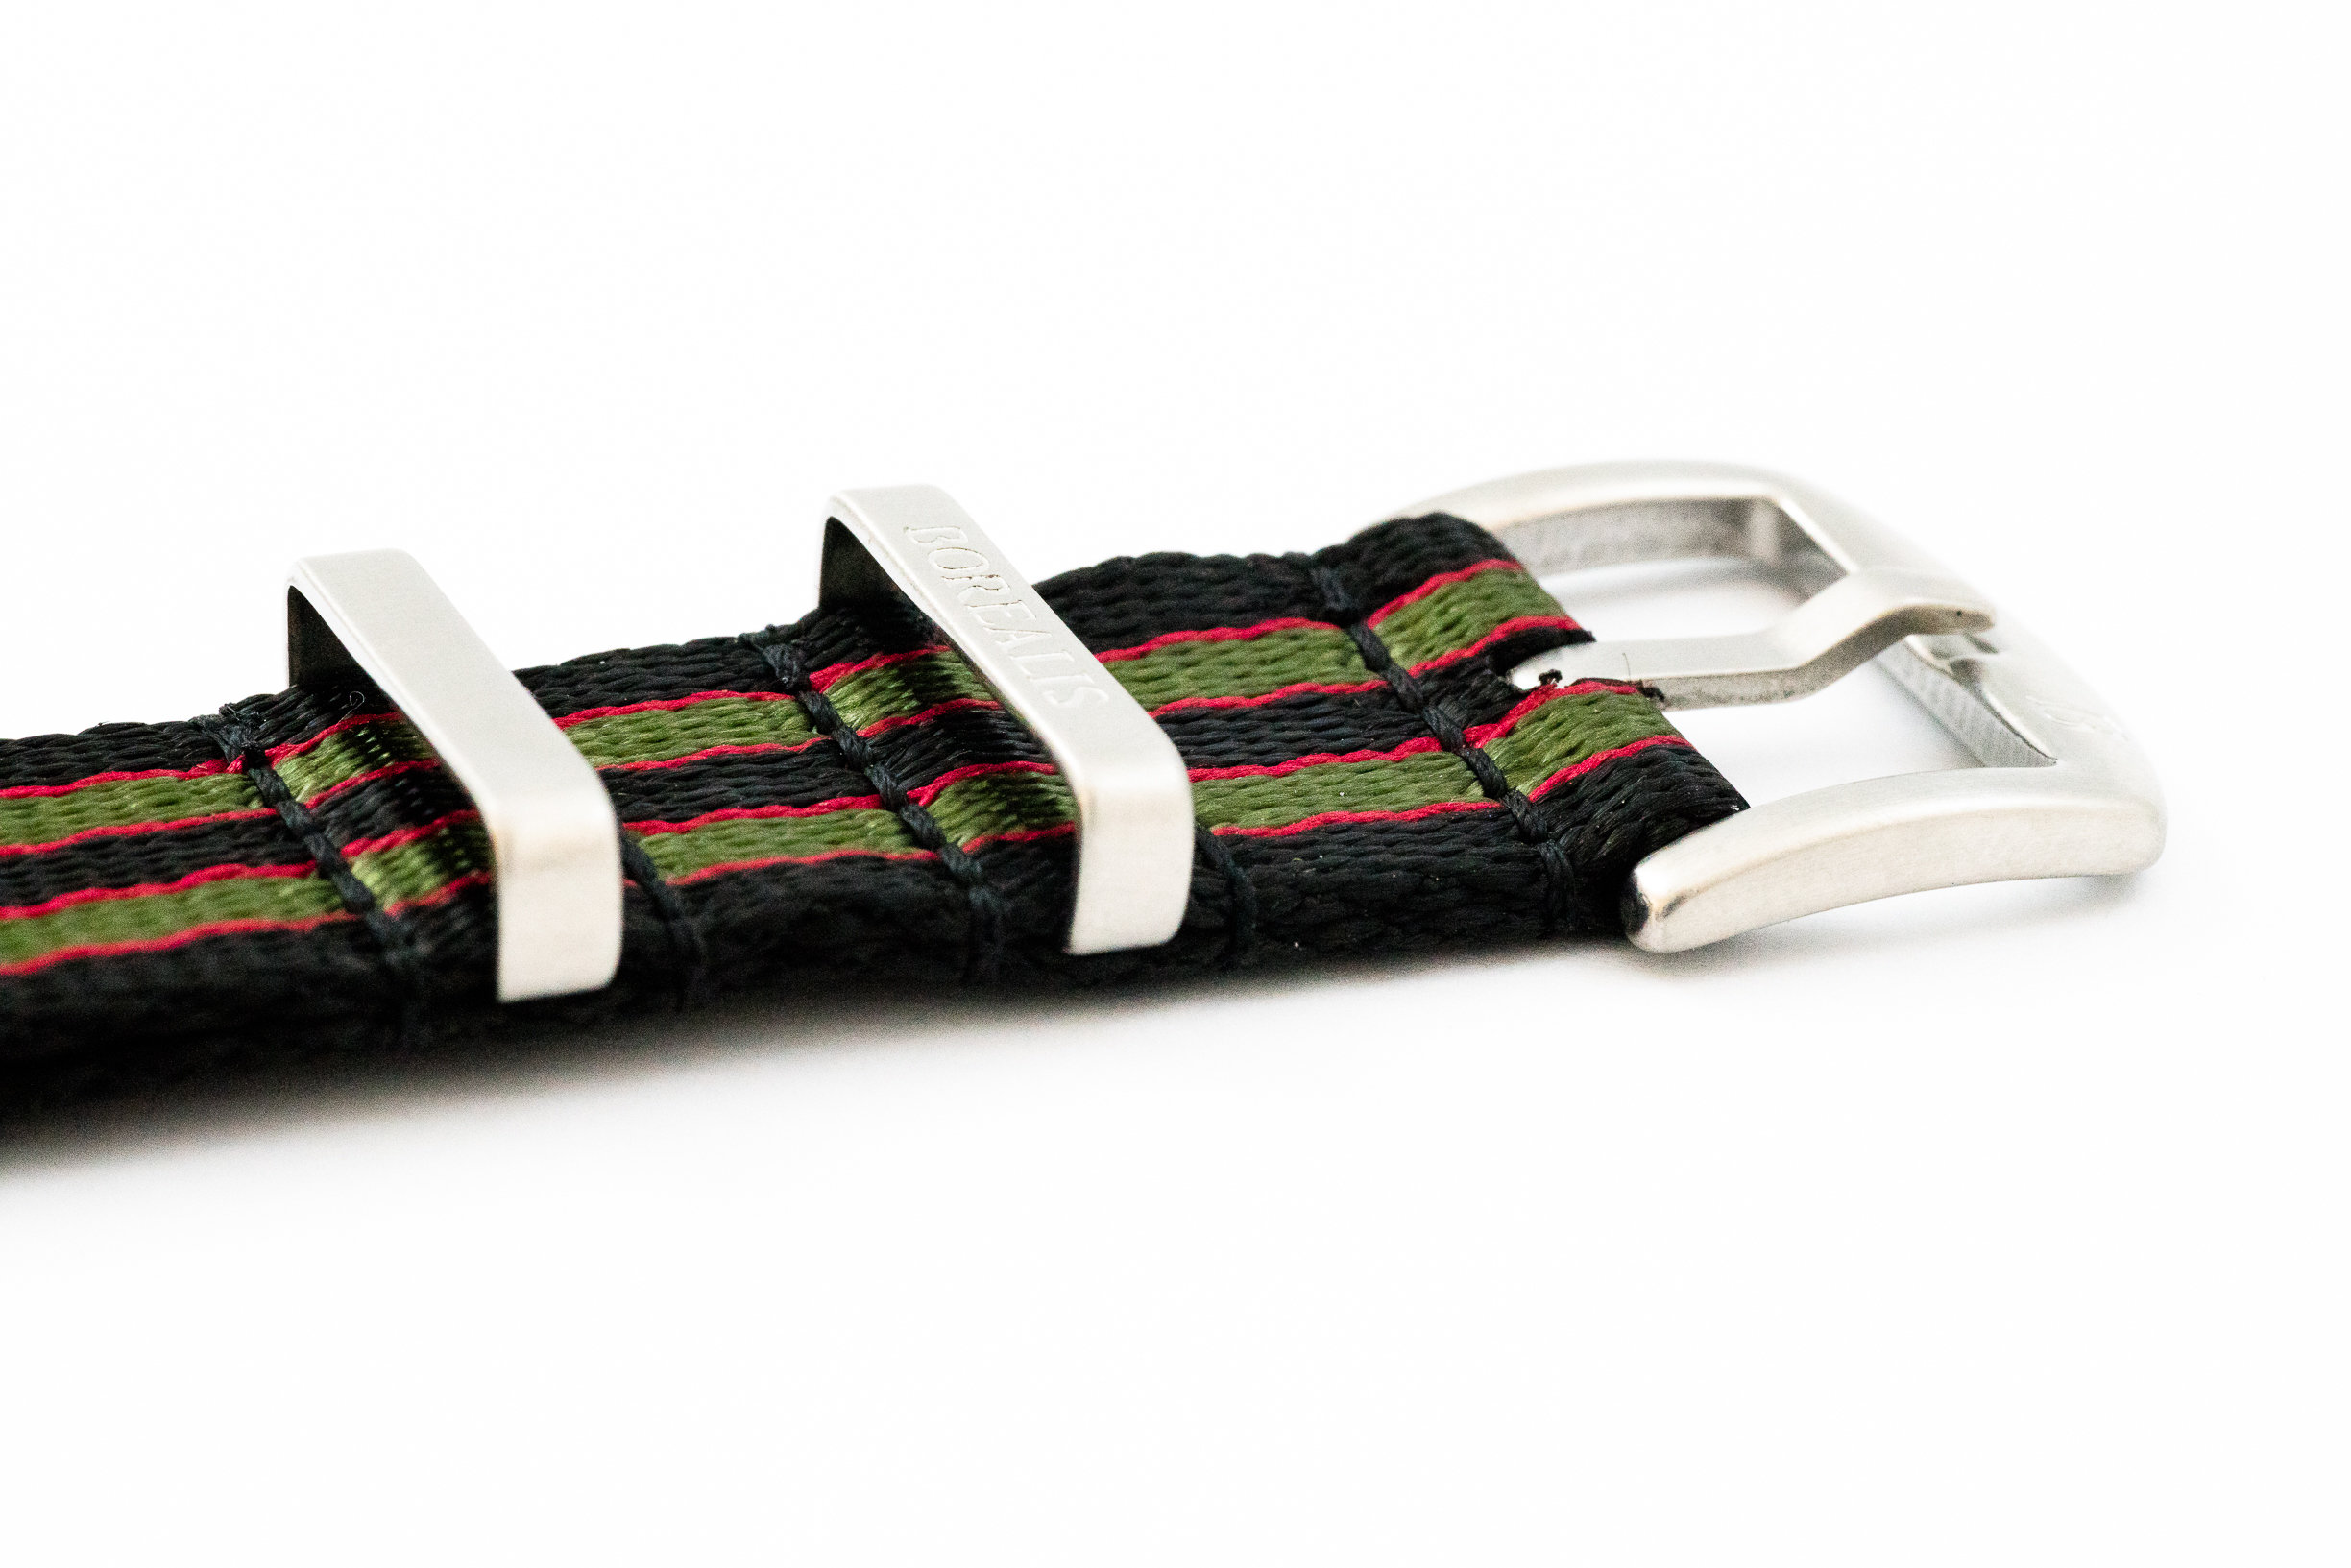 Premium Nato style seatbelt nylon strap 22mm size three tone black red green